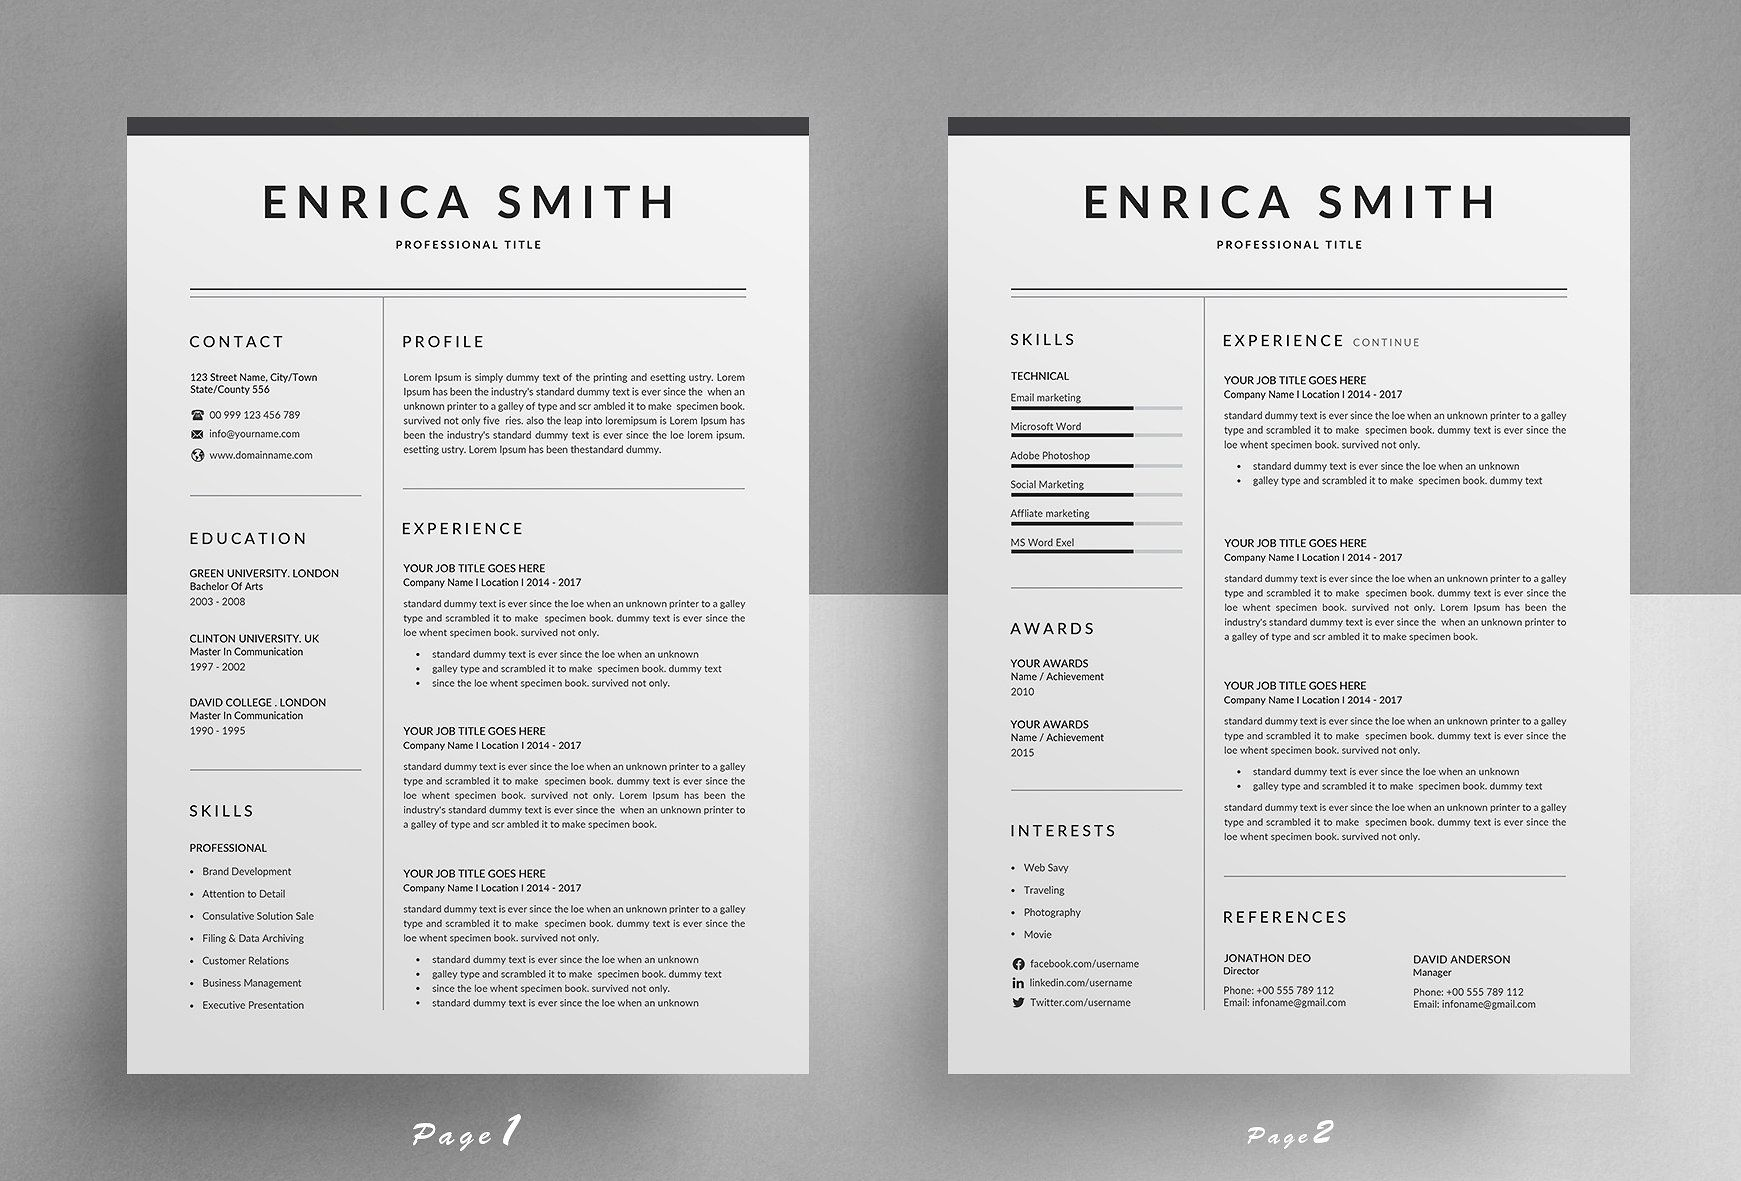 resume cv cover letter for template free matching and templates screening software Resume Free Matching Cover Letter And Resume Templates